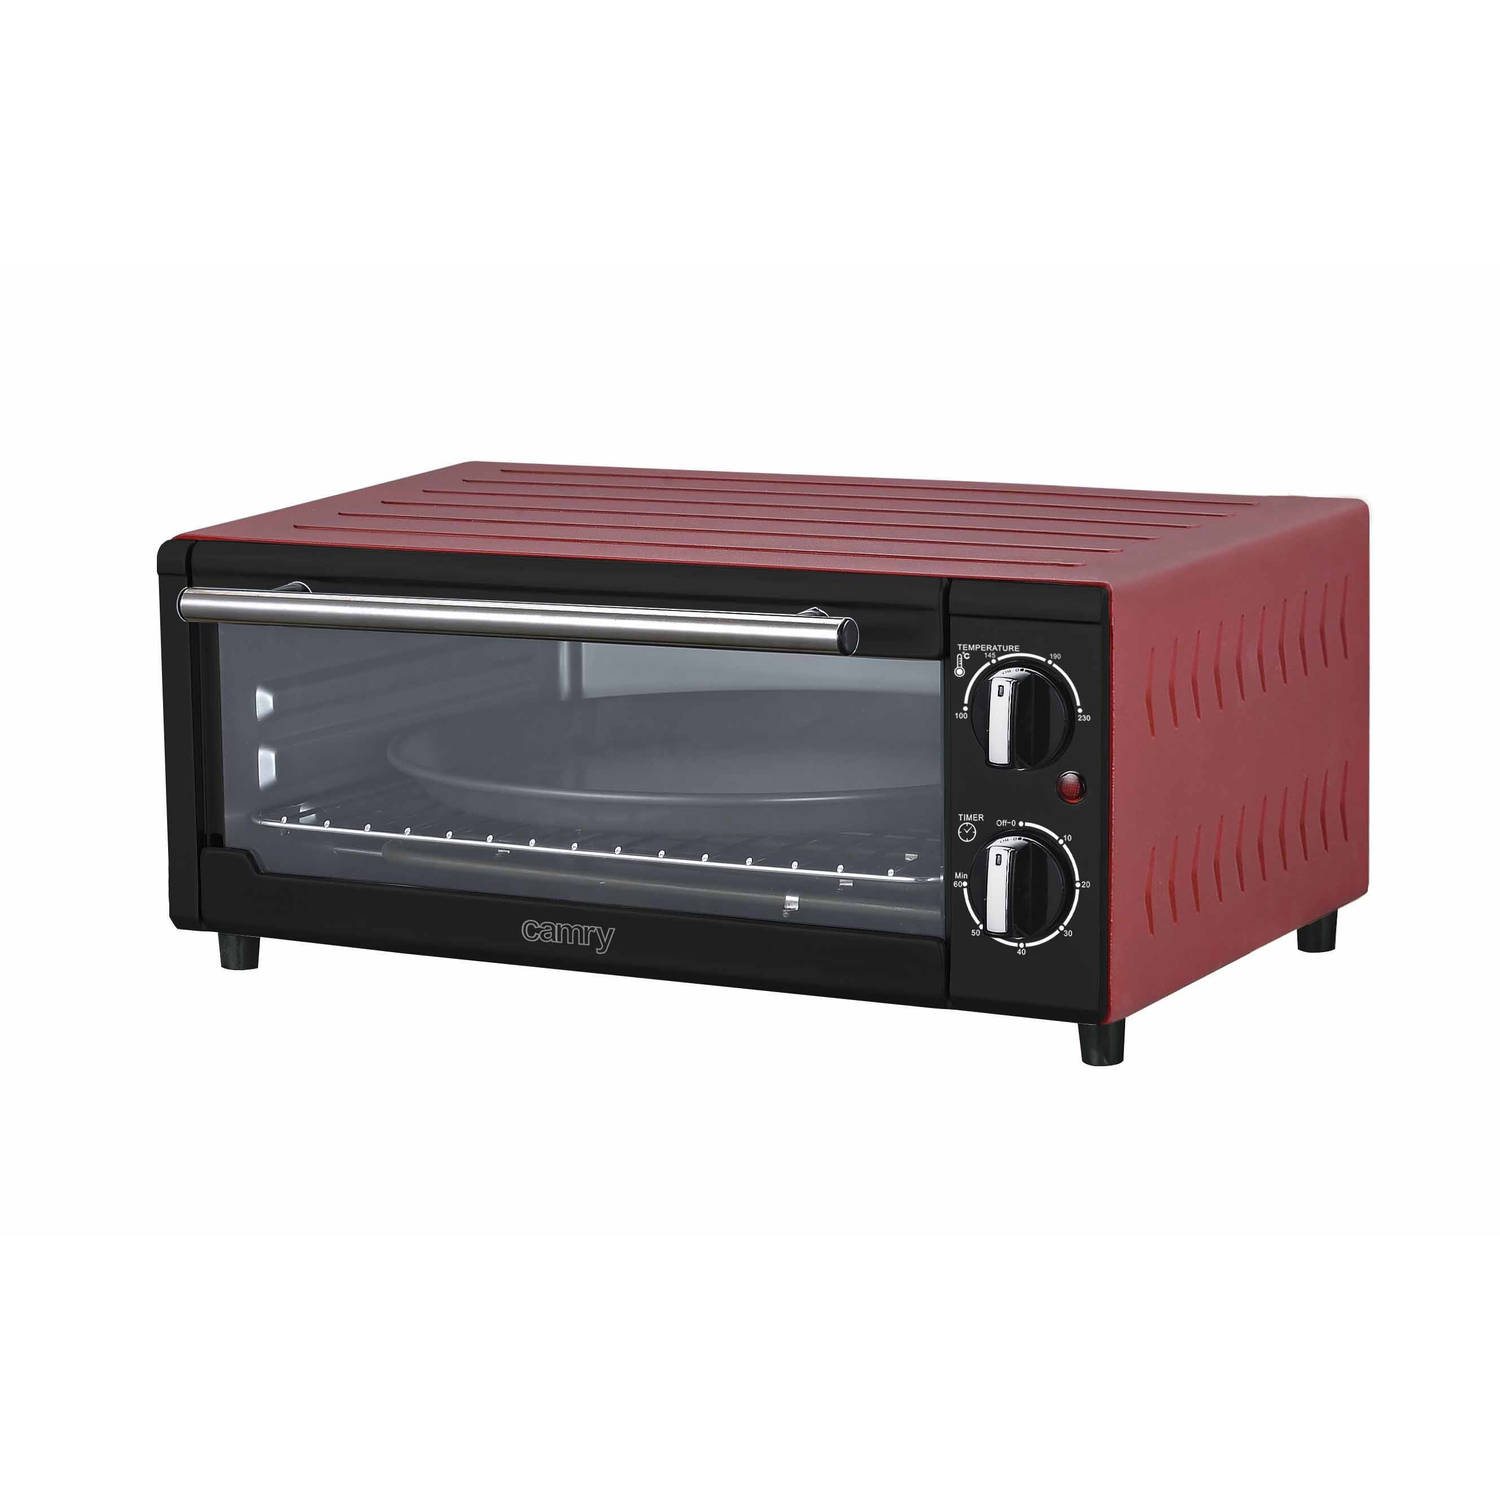 Camry CR 6015R pizza oven rood